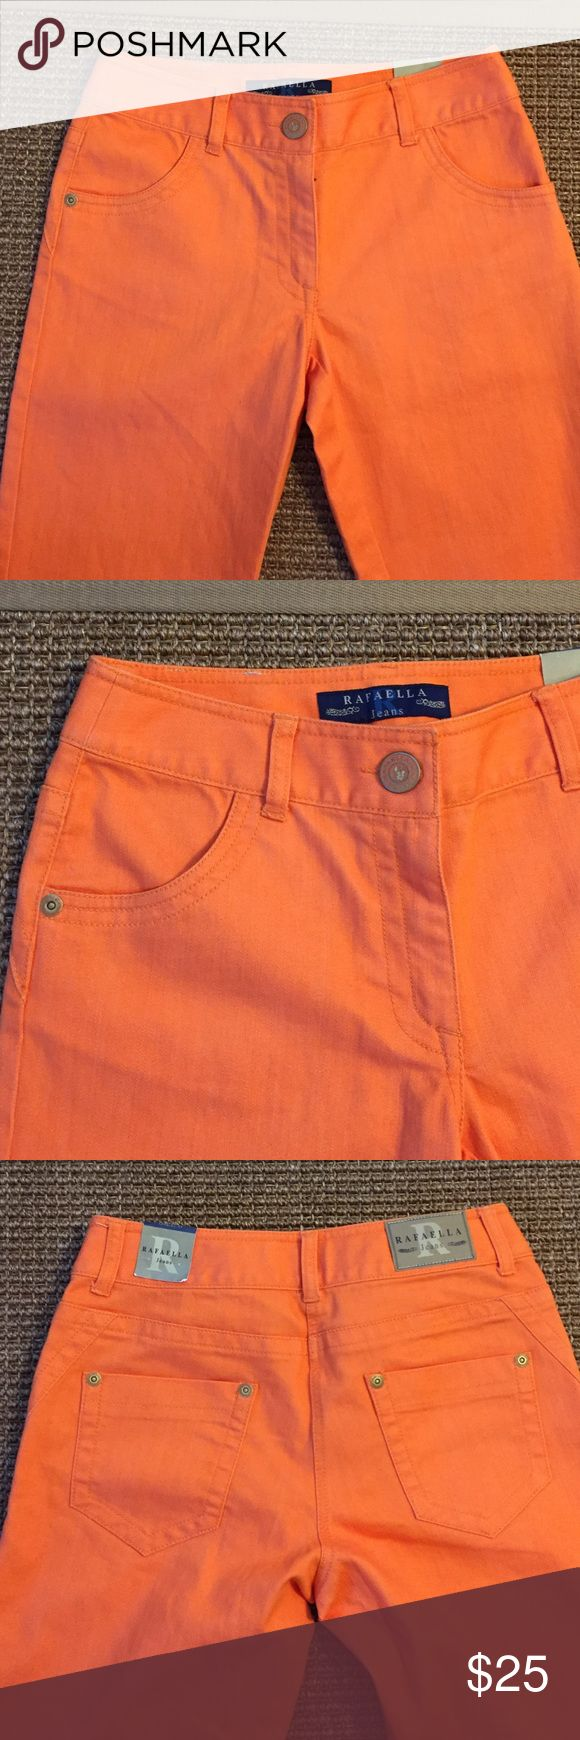 "NWT RAFAELLA CROPPED JEANS: BRIGHT ORANGE SIZE 6 BRAND NEW RAFAELLA: BEAUTIFUL BRIGHT ORANGE CROPPED JEANS. 73% cotton, 26% polyester, 2% spandex med weight machine washable denim. Inseam 25.5"", waist about 28"", rise 9"". EXCELLENT CONDITION with tags. Rafaella Jeans Ankle & Cropped"